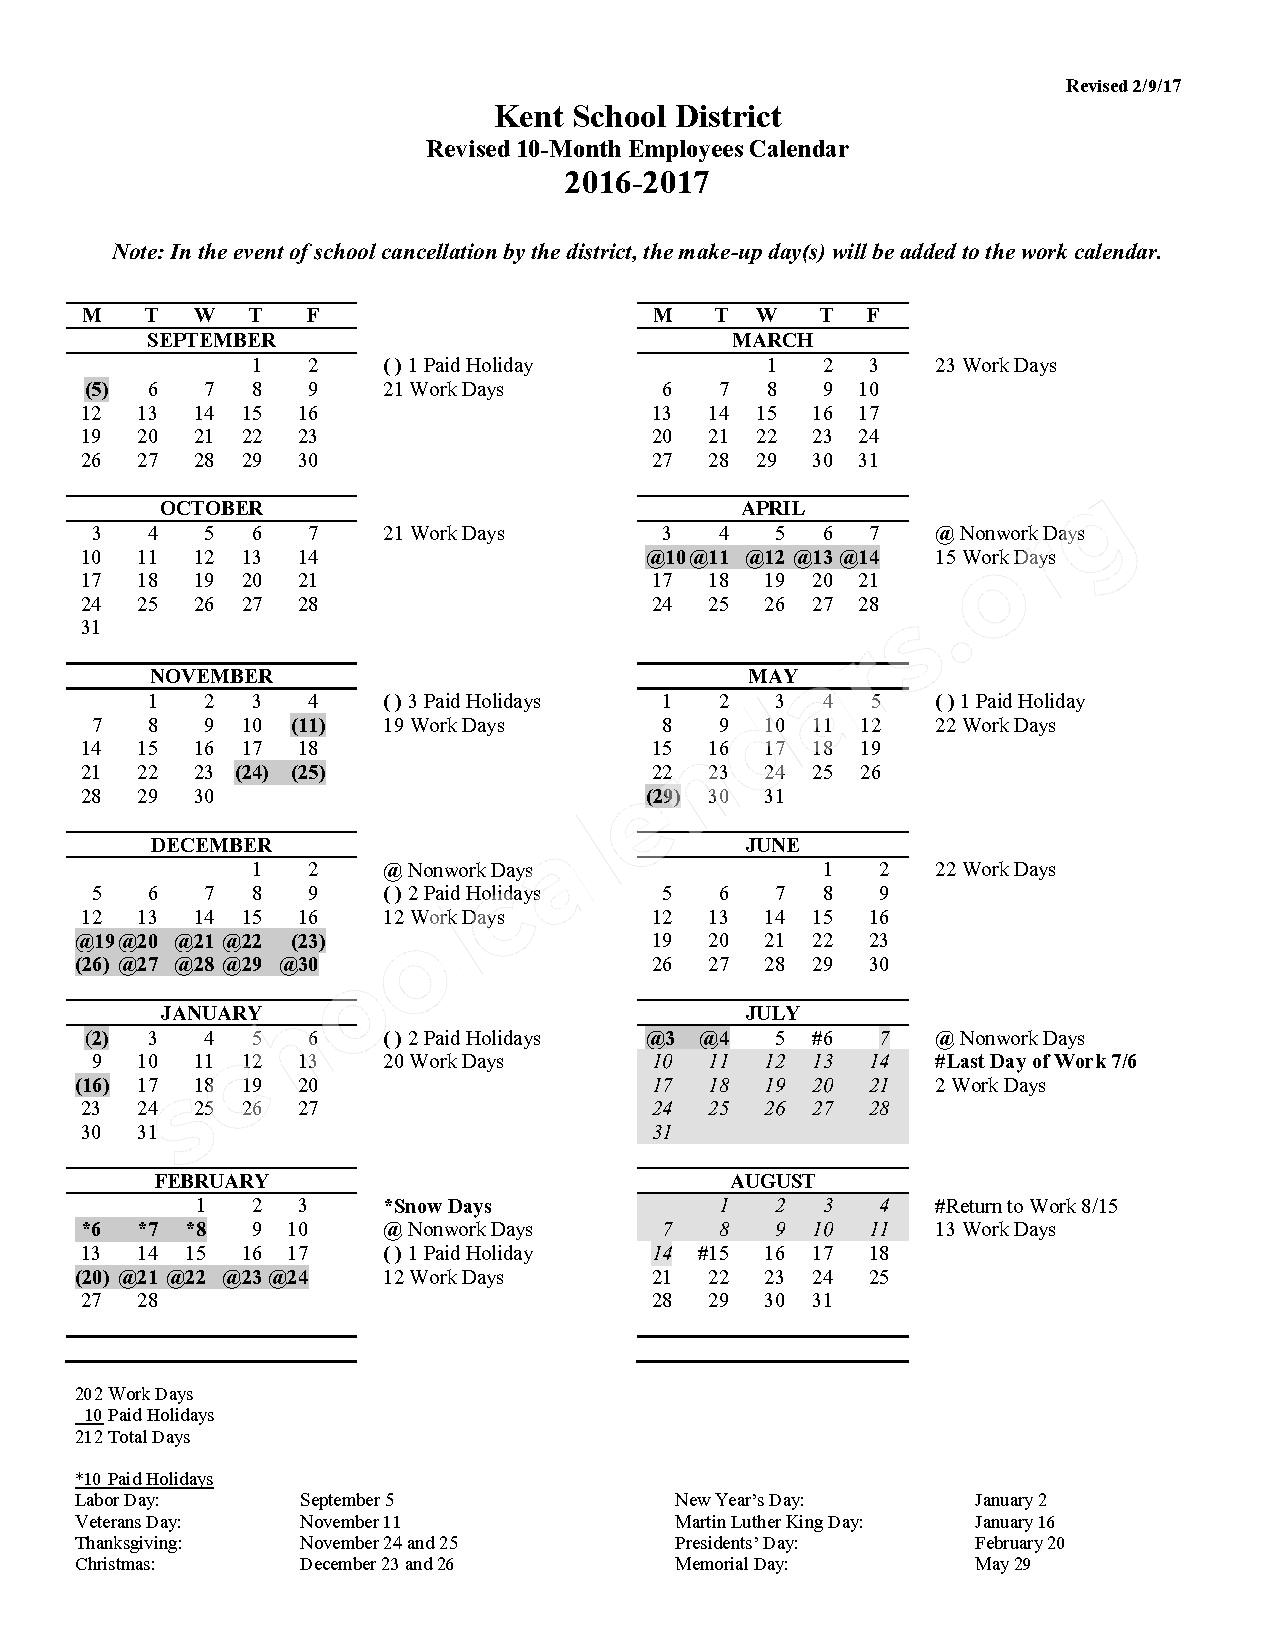 2016 - 2017 10-Month Employees Calendar (Revised) – Meadow Ridge Elementary School – page 1